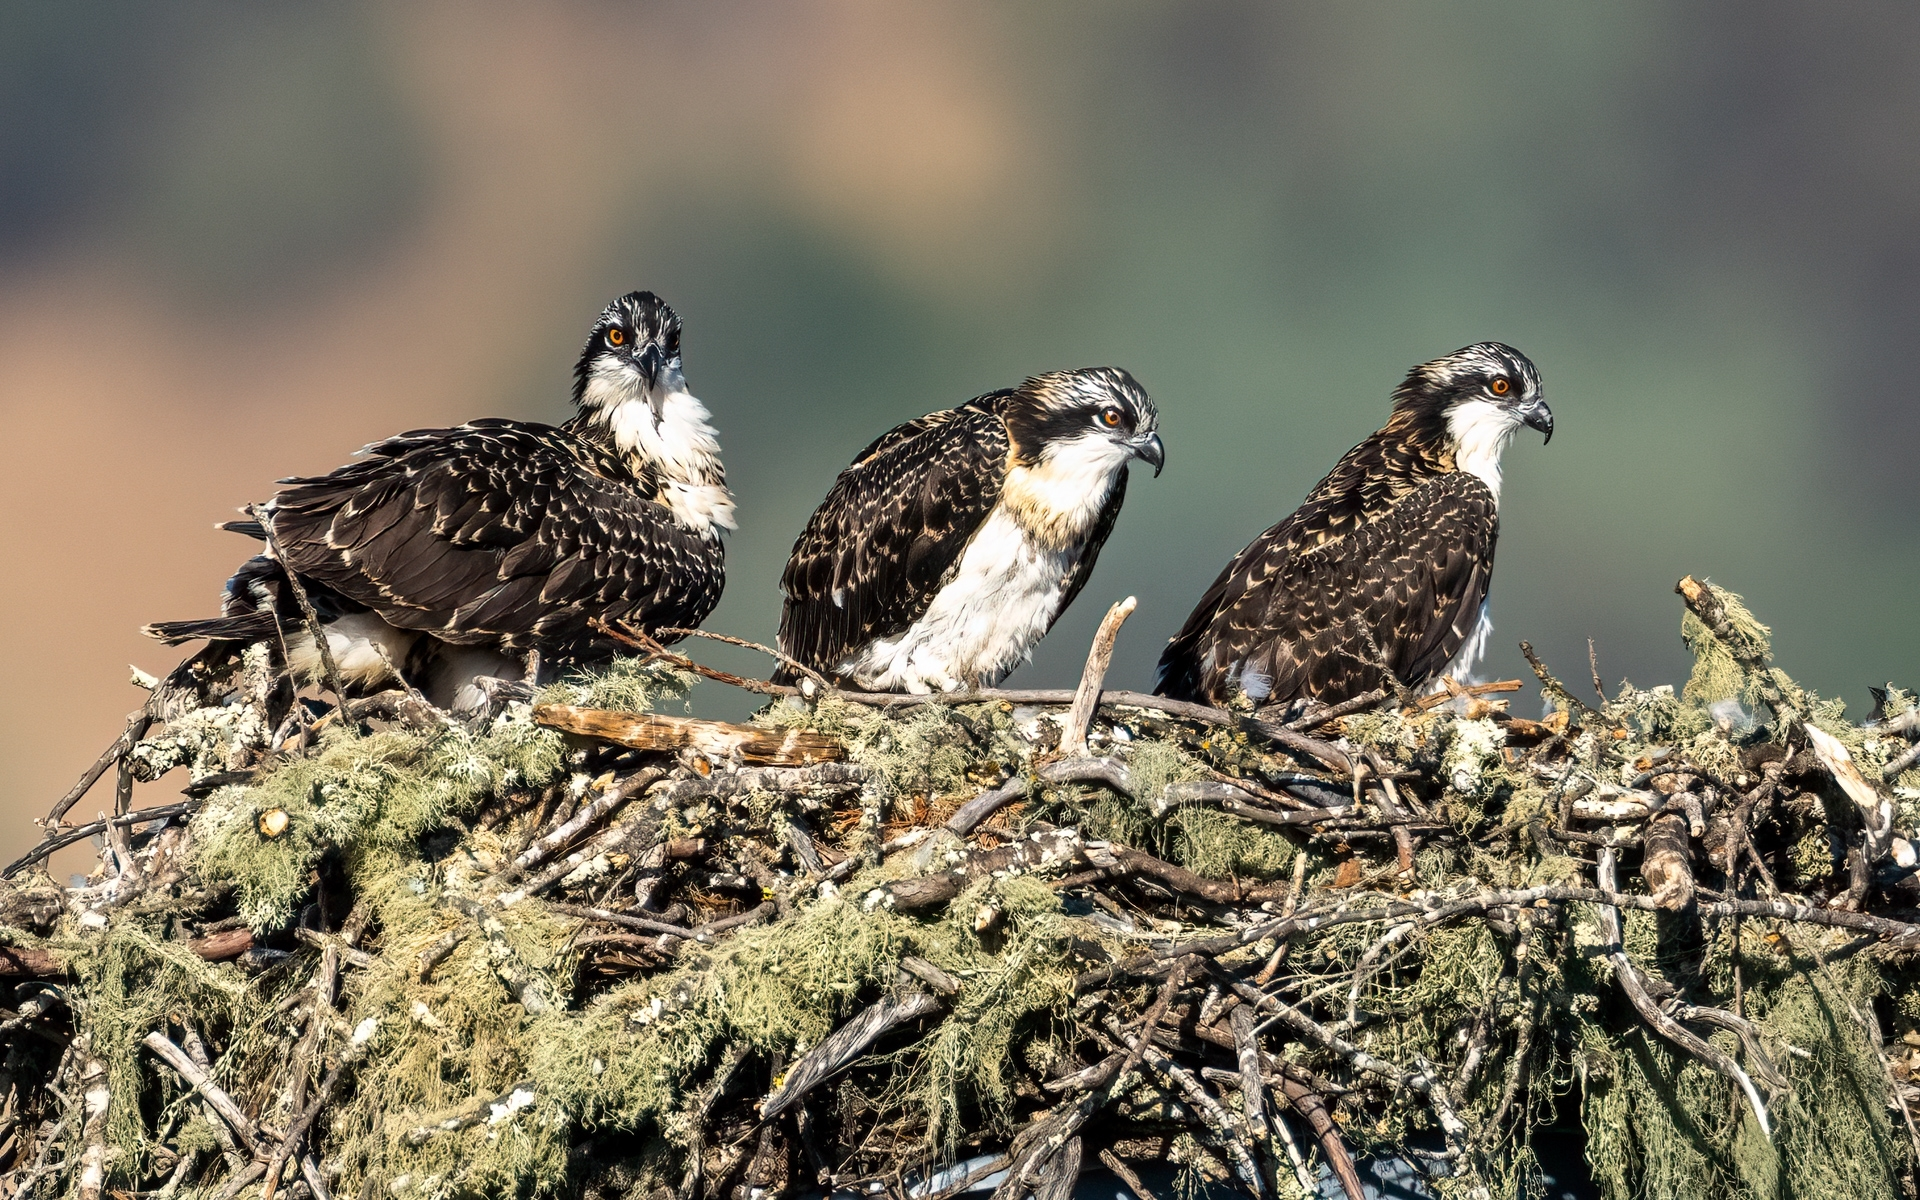 Osprey-Family-1-Early-morning-at-the-osprey-nest-as-three-fledglings-wait-for-an-adult-to-bring-food-NM-1-Place-by-Jerry-Meshulam-SR